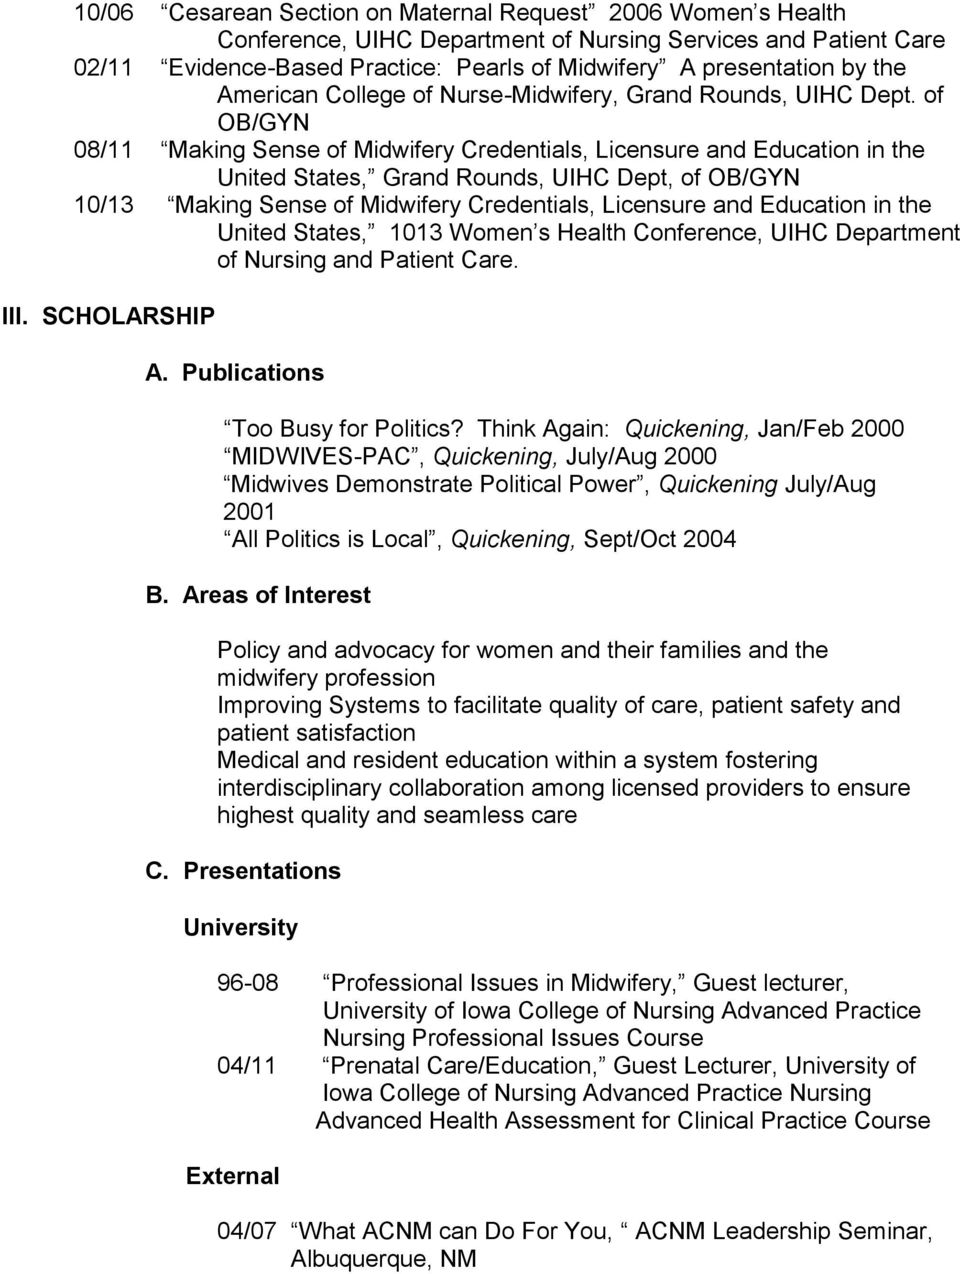 of OB/GYN 08/11 Making Sense of Midwifery Credentials, Licensure and Education in the United States, Grand Rounds, UIHC Dept, of OB/GYN 10/13 Making Sense of Midwifery Credentials, Licensure and